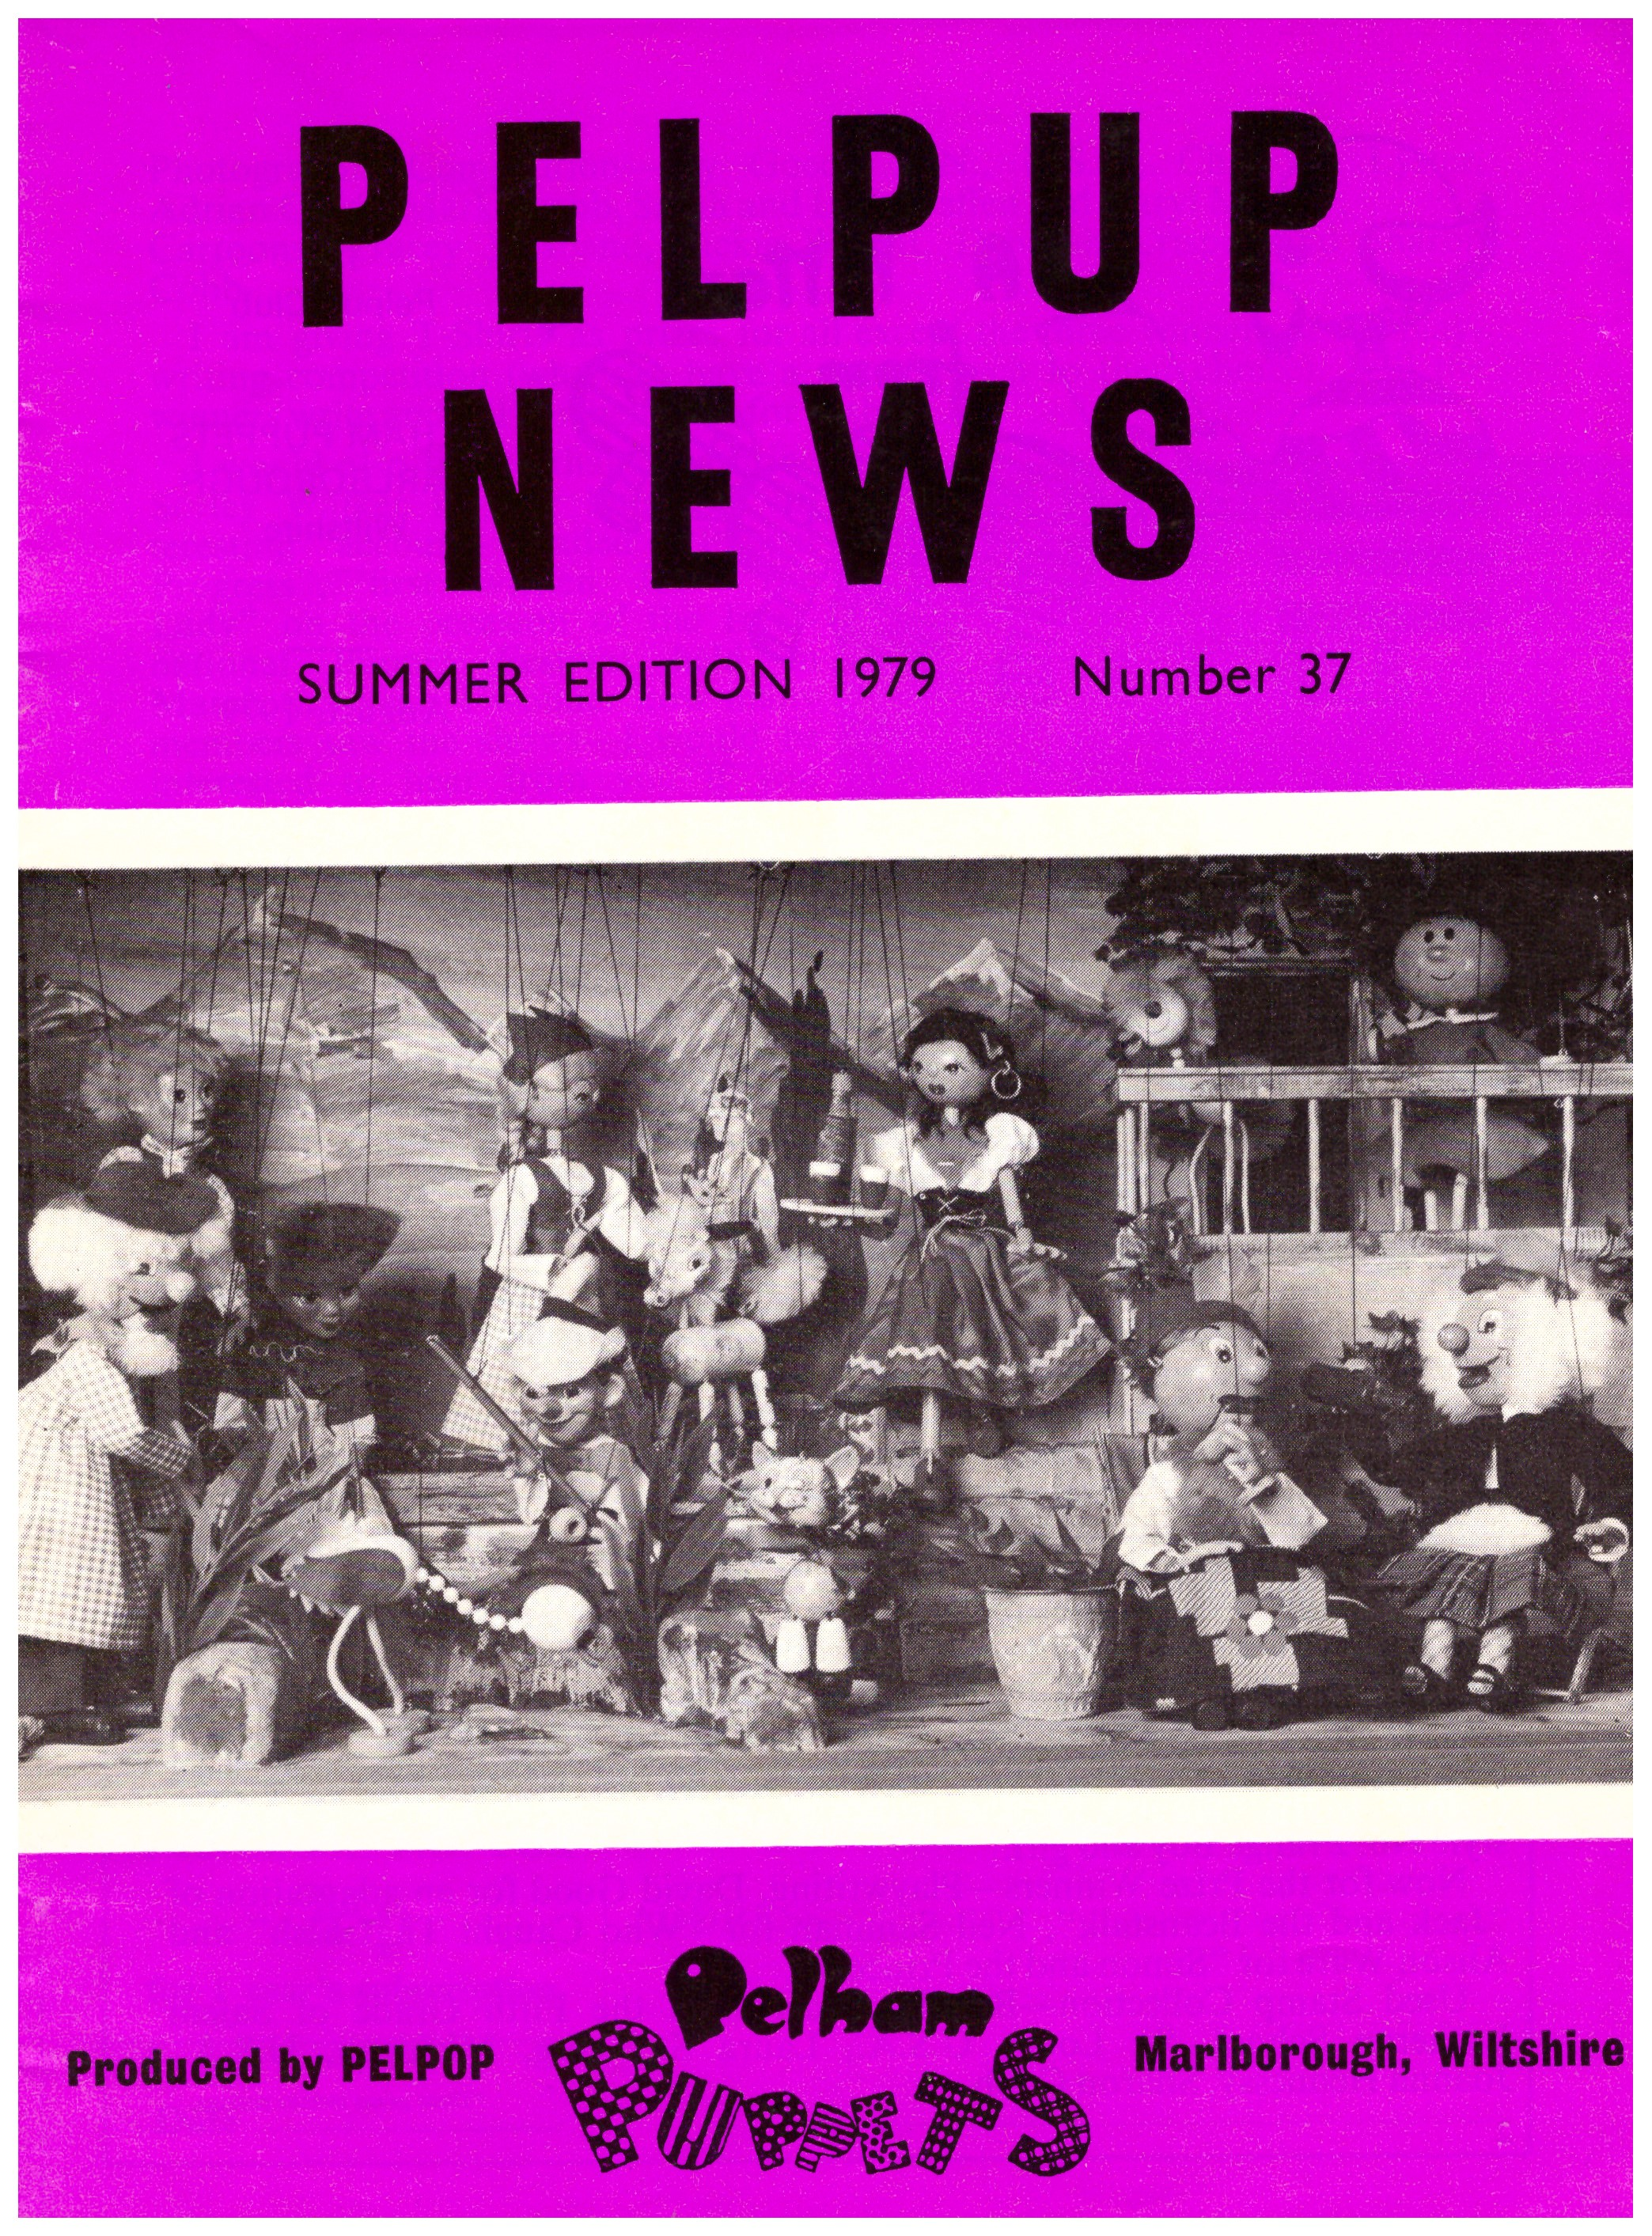 Summer Edition 1979 - Number 37